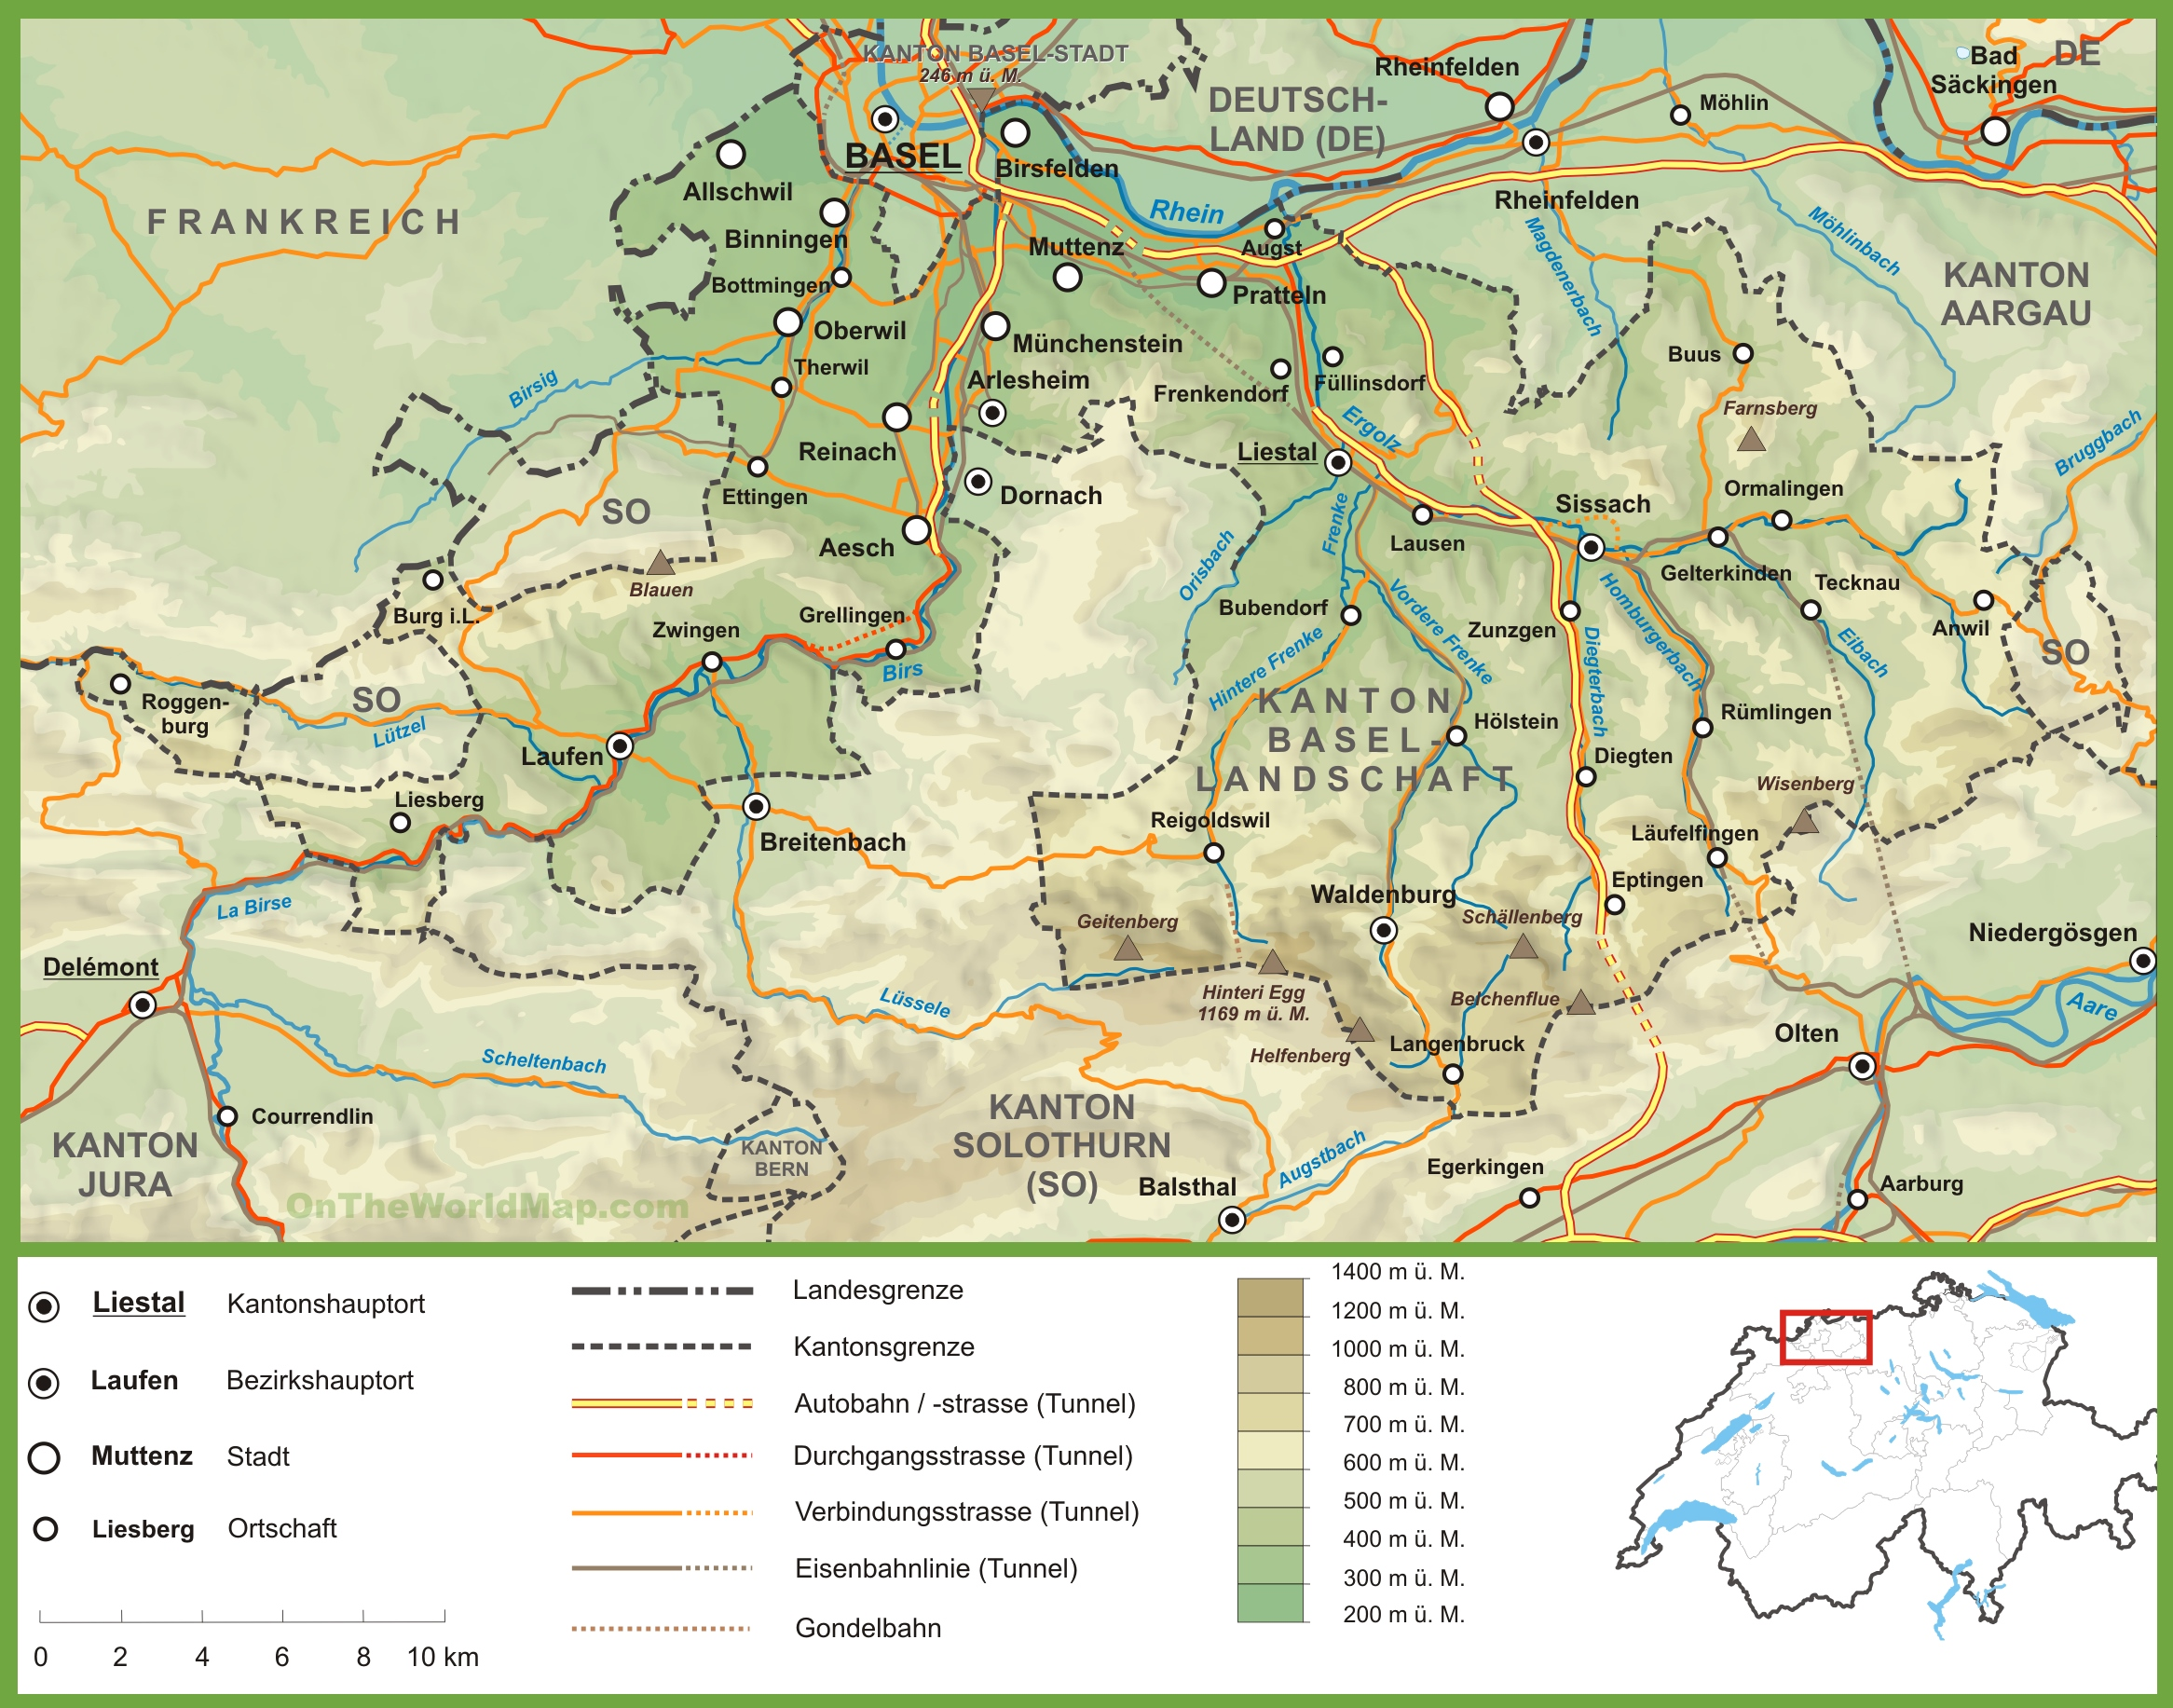 Canton of BaselLandschaft road map